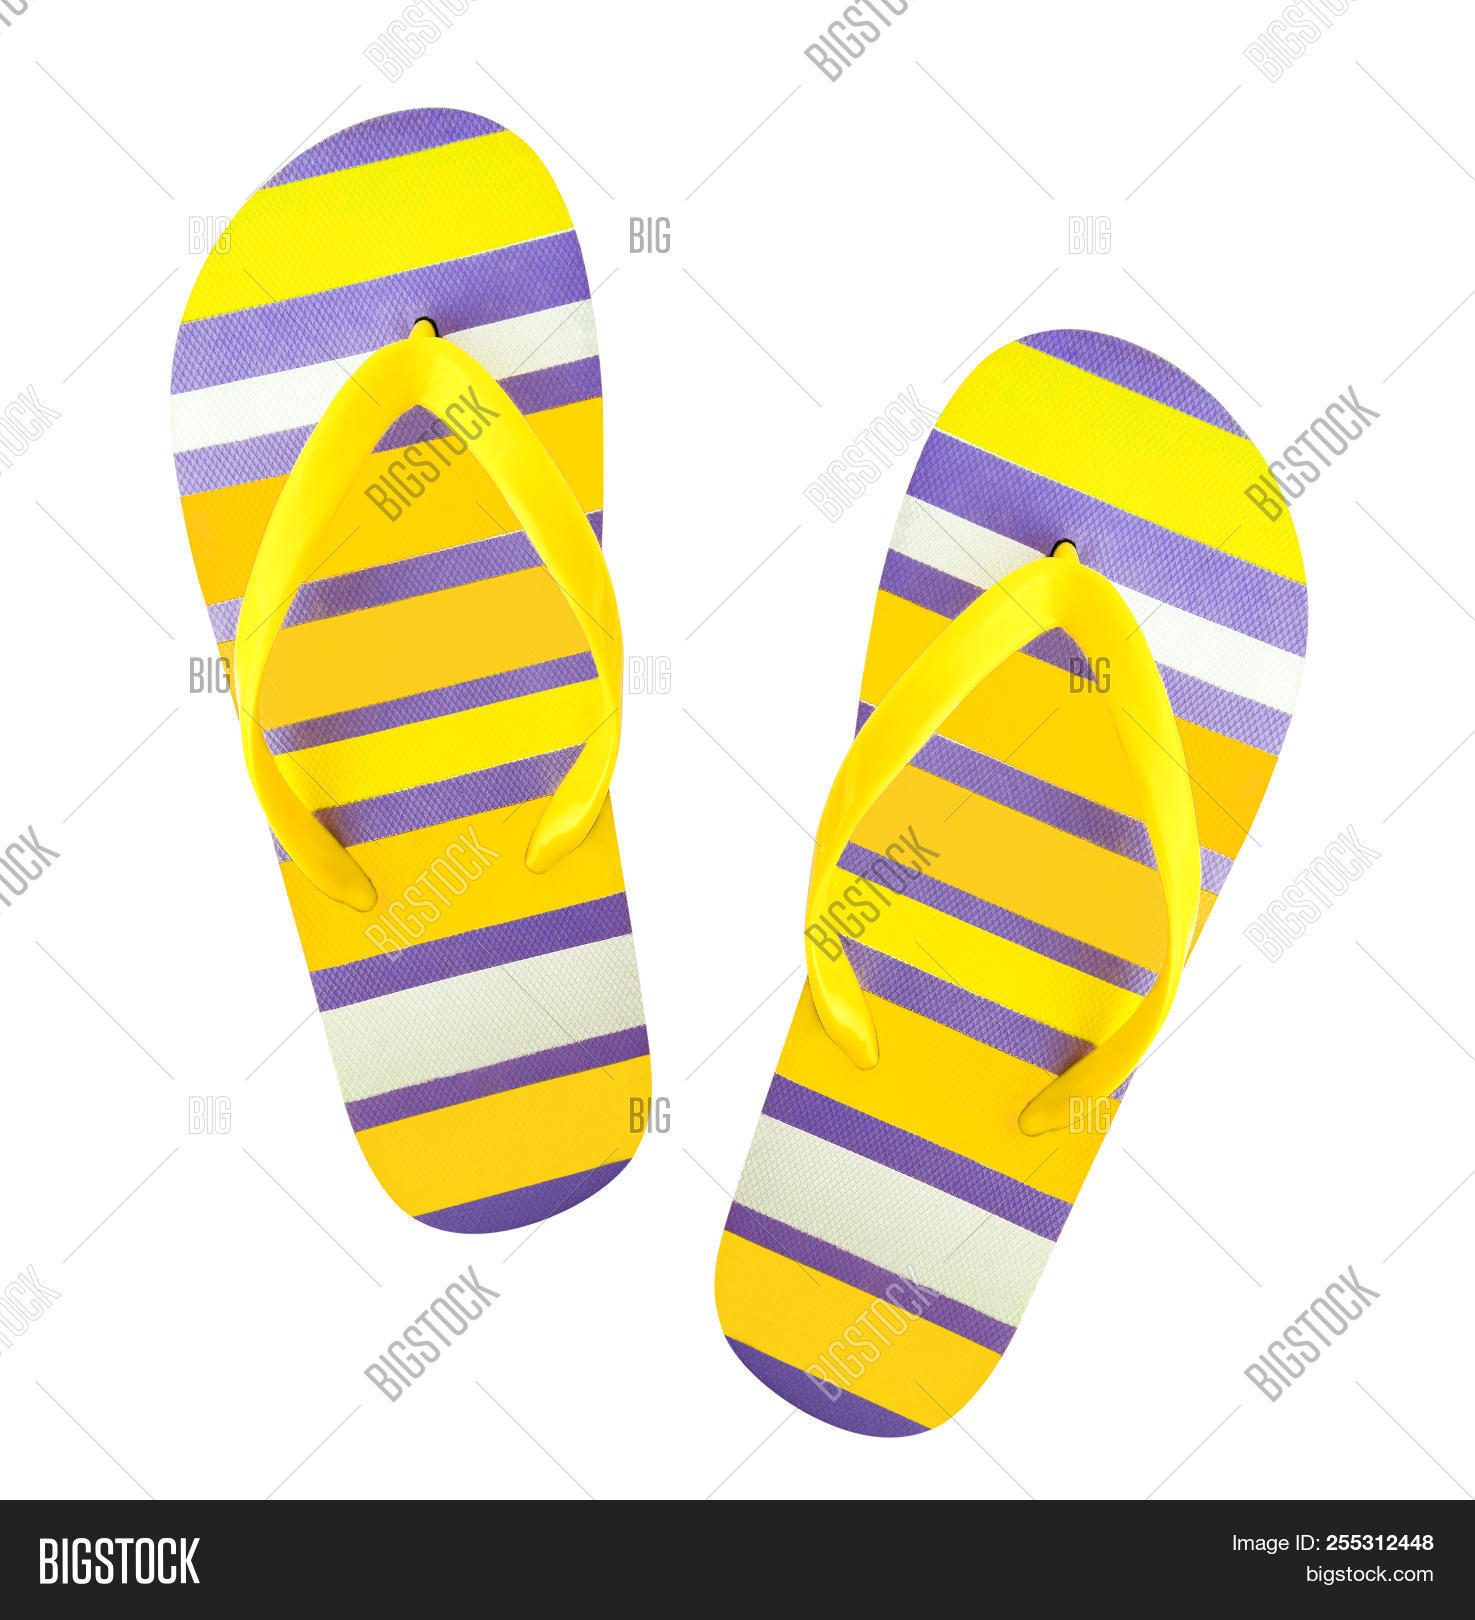 42ef8eeb907c Top view of bright color flip flops for beach or swimming pool. Striped  color pair of sandals isolated on white background. Shoes for men and women